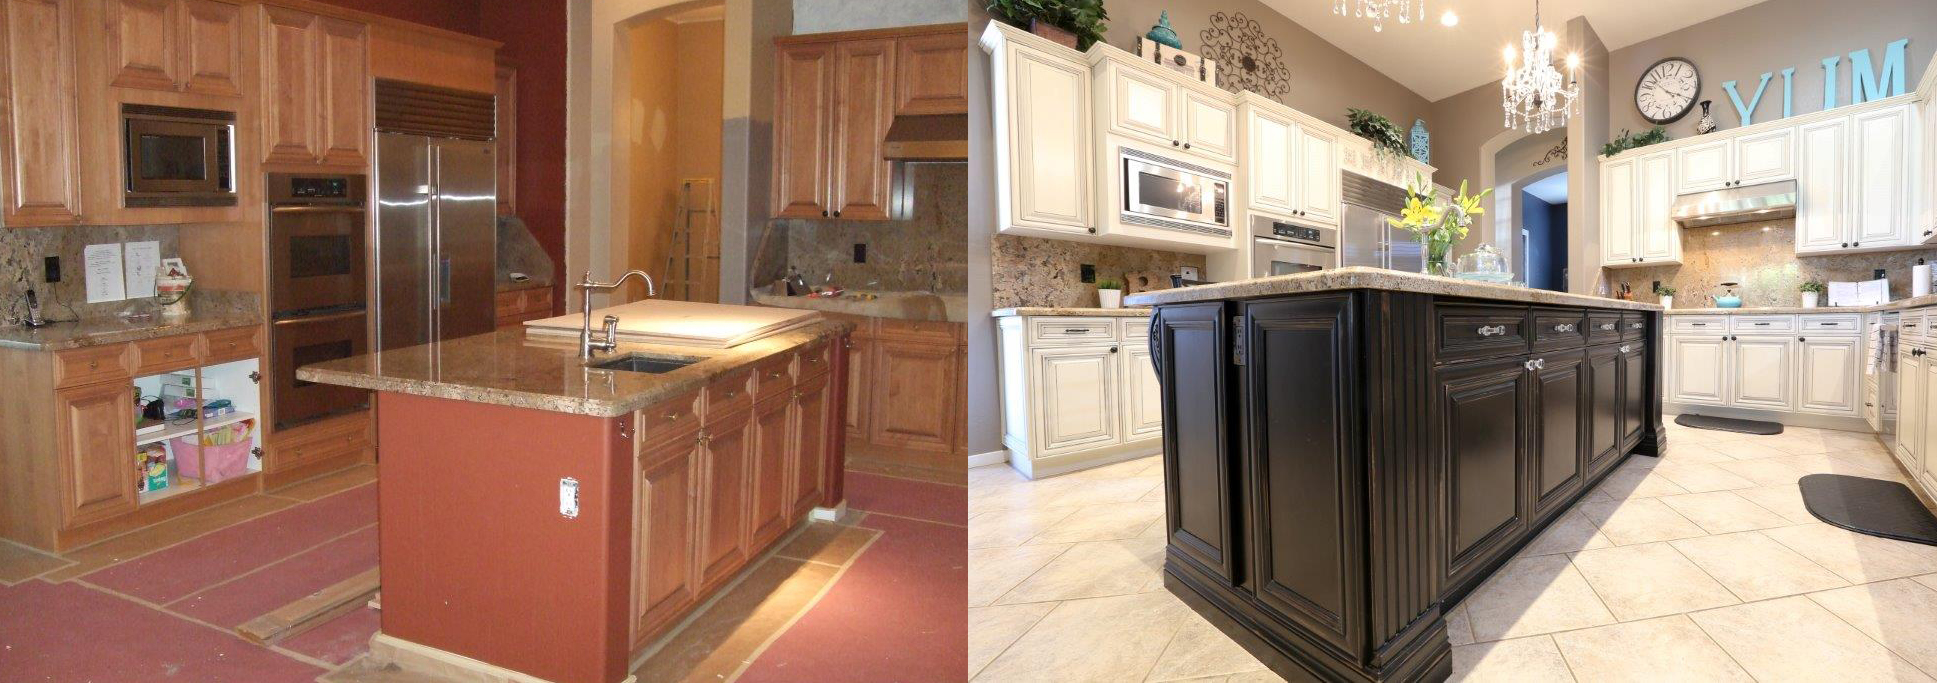 Completely Refinished Cabinets Phoenix Arizona 3